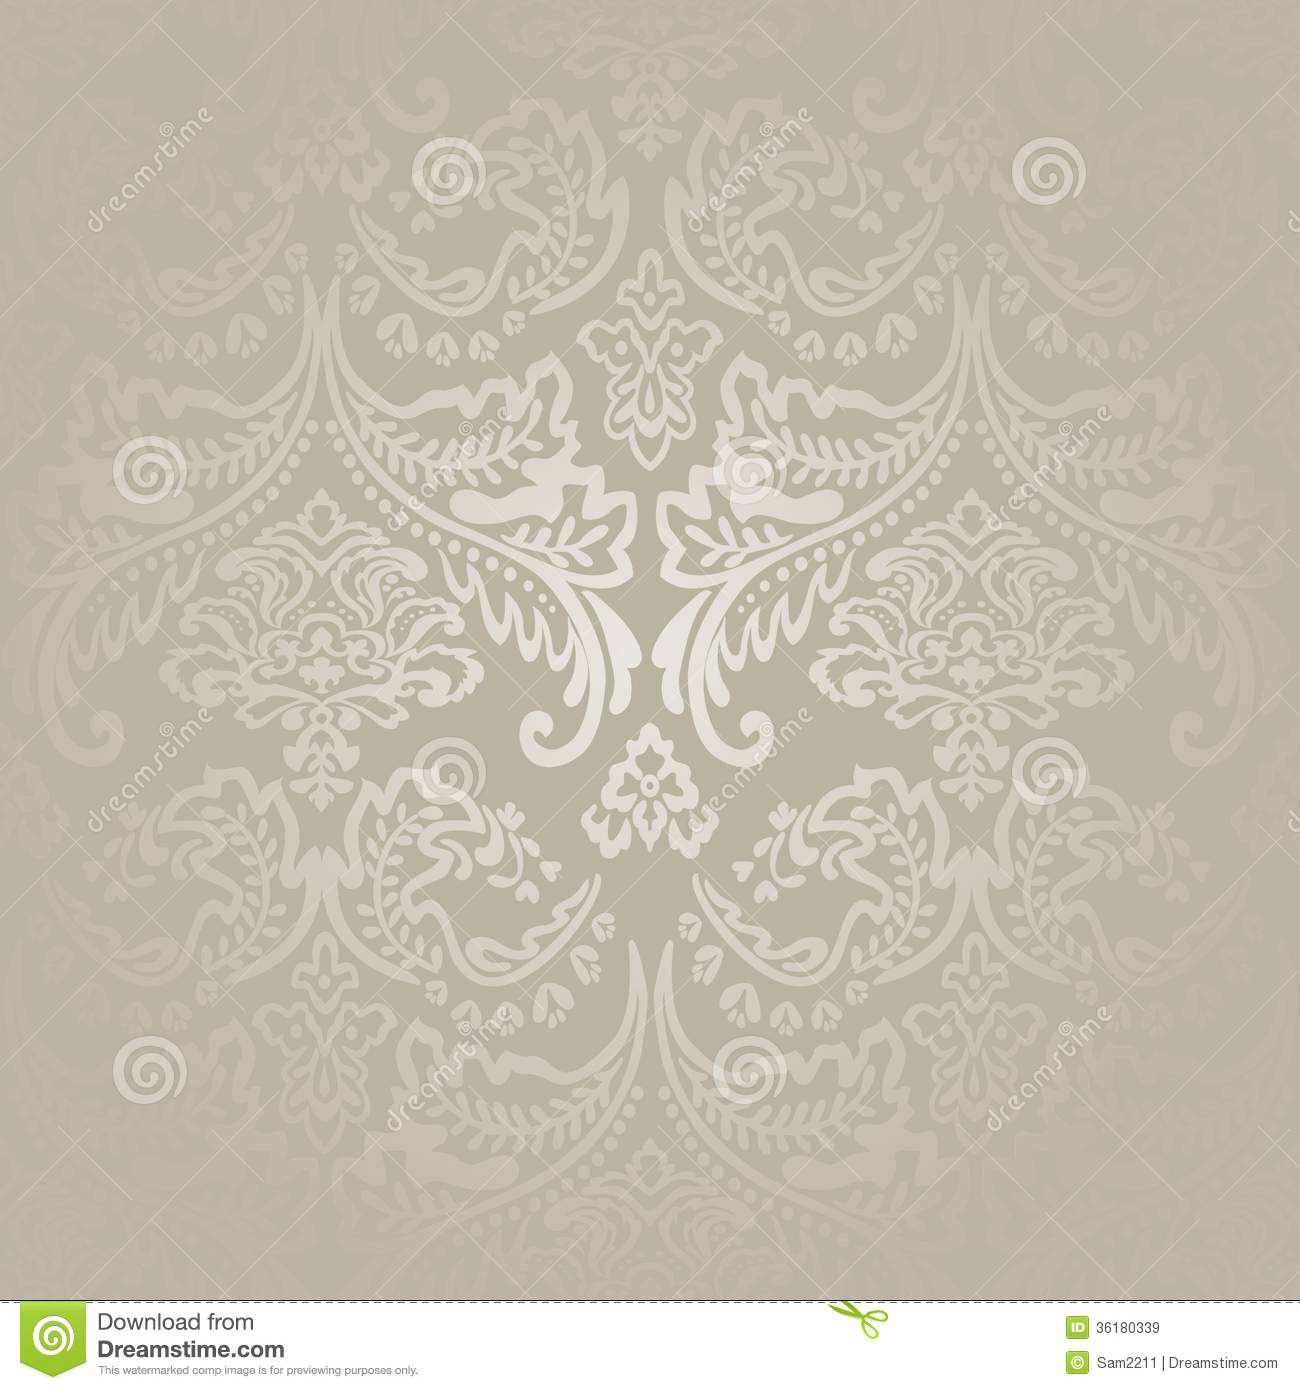 Islamic Book Cover Design Vector ~ Seamless geometric pattern in islamic style stock vector